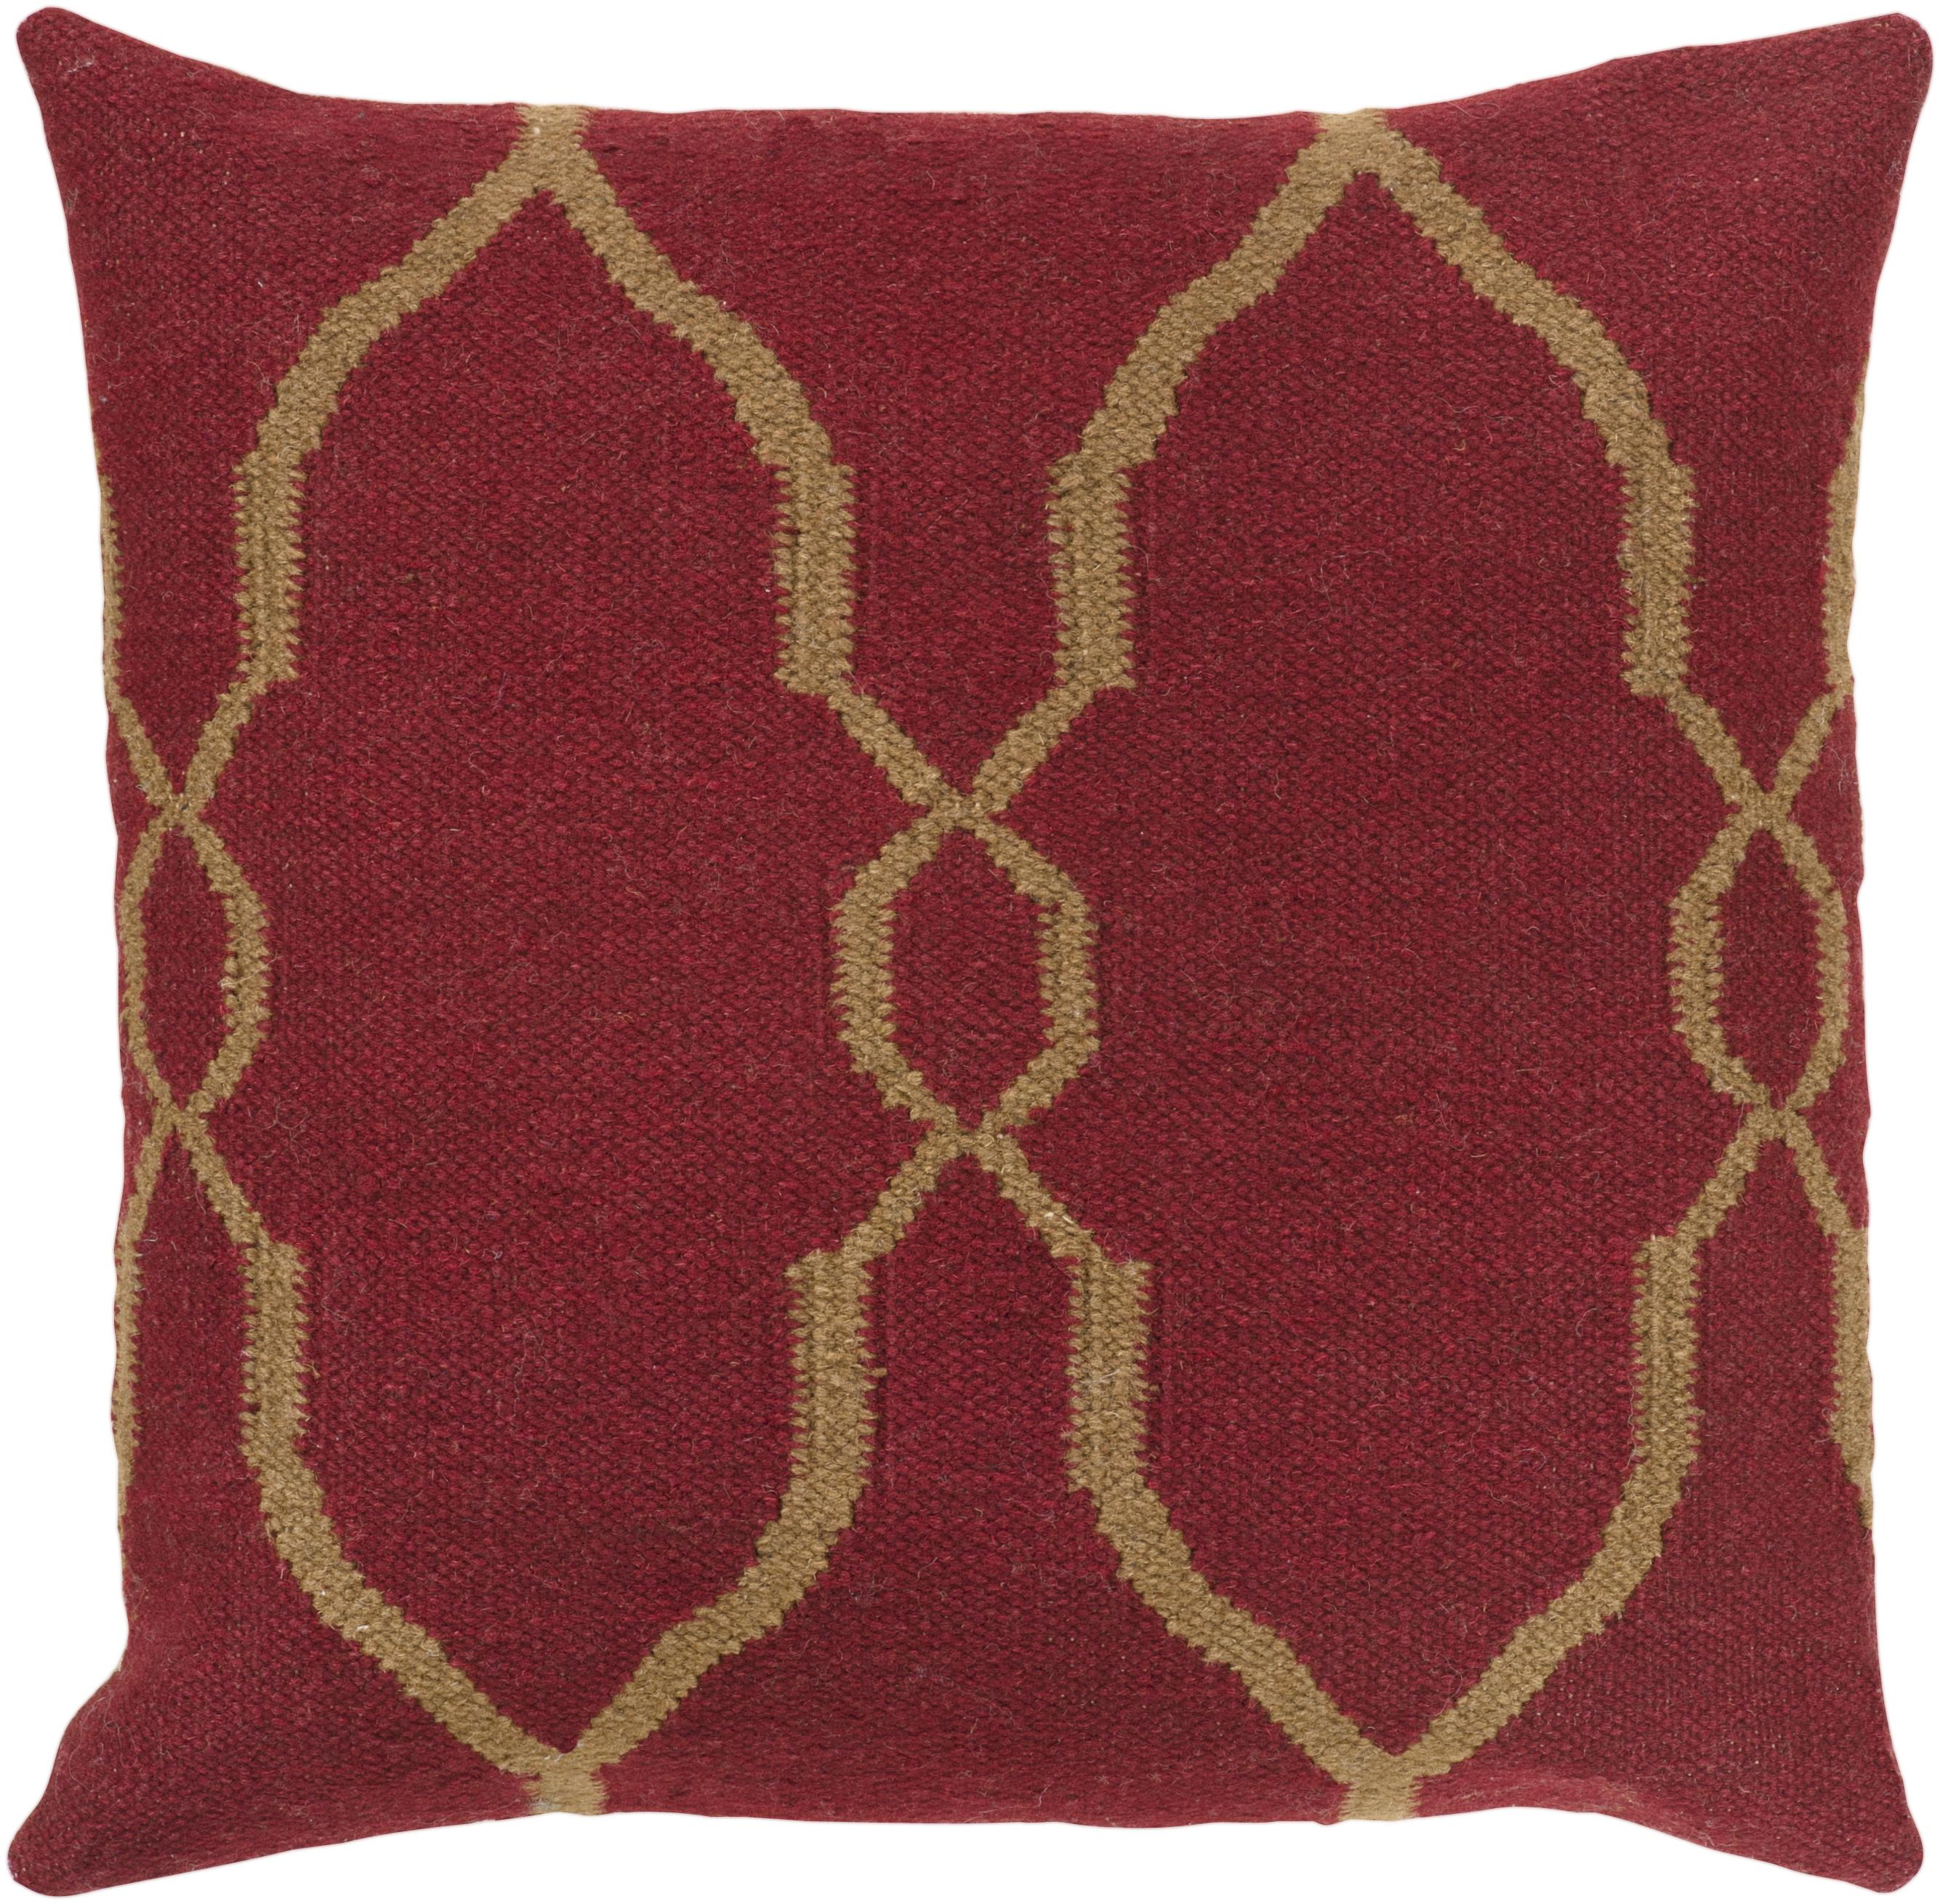 "Surya Pillows 18"" x 18"" Pillow - Item Number: FA019-1818P"